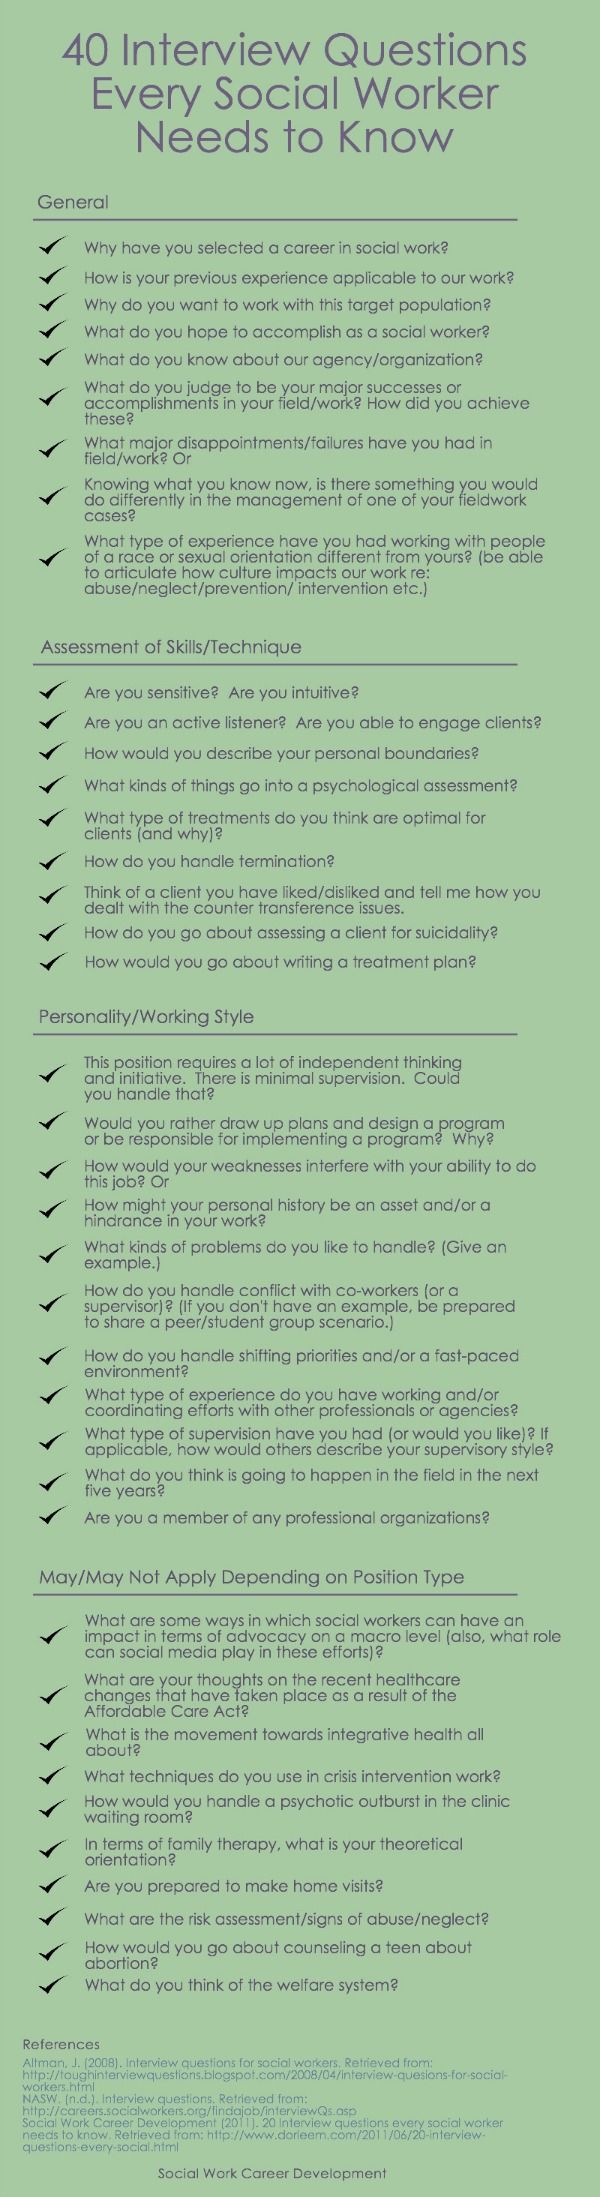 an earlier post had provided you with 20 questions every social worker needs to know for the interview preparation process however since then some - Social Work Interview Questions For Social Workers